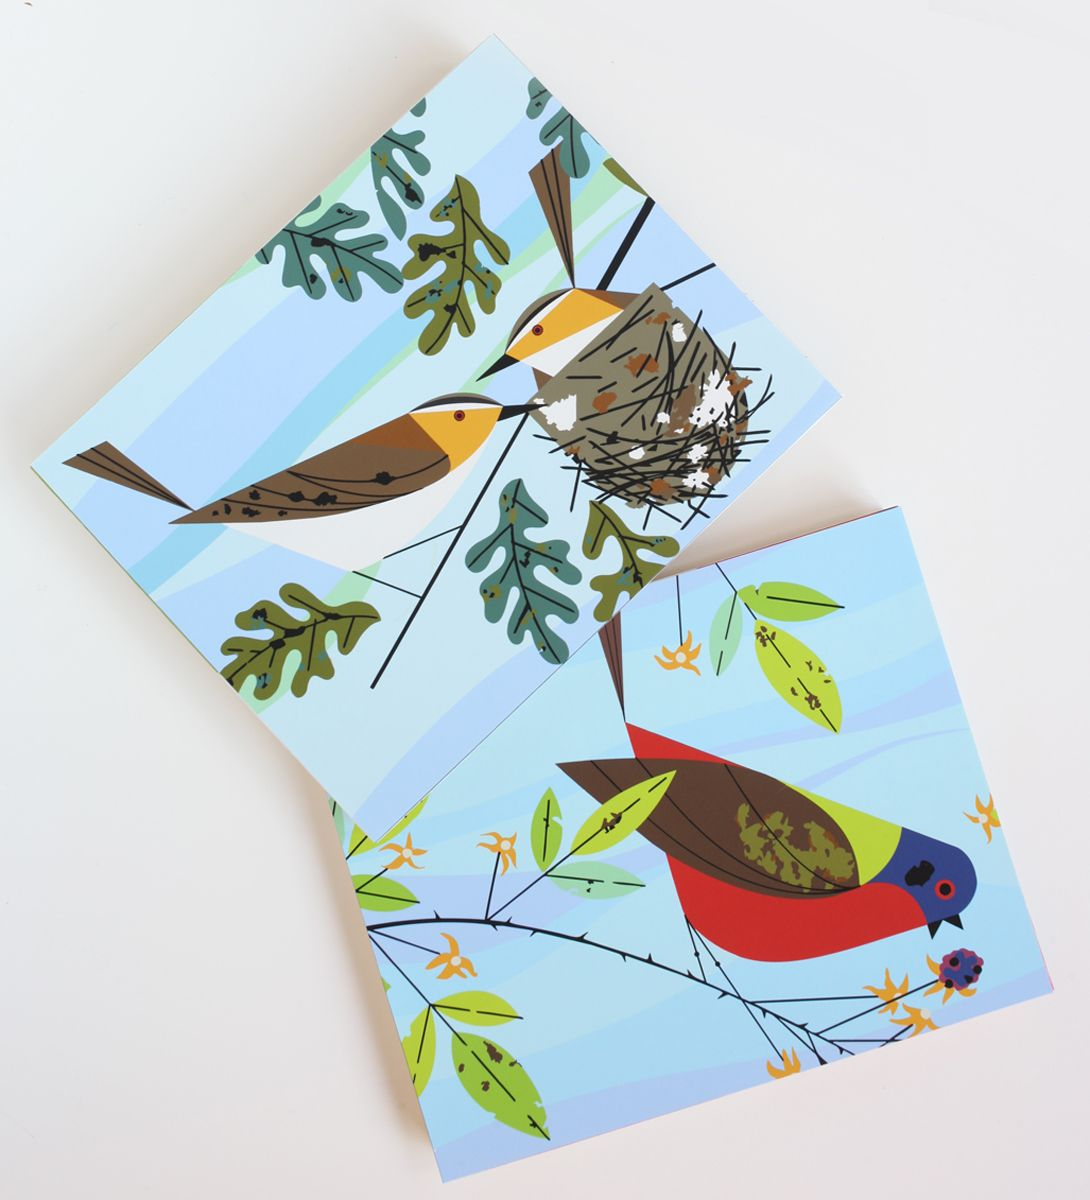 Charley Harper Paint by Number | Made Modern | Pinterest